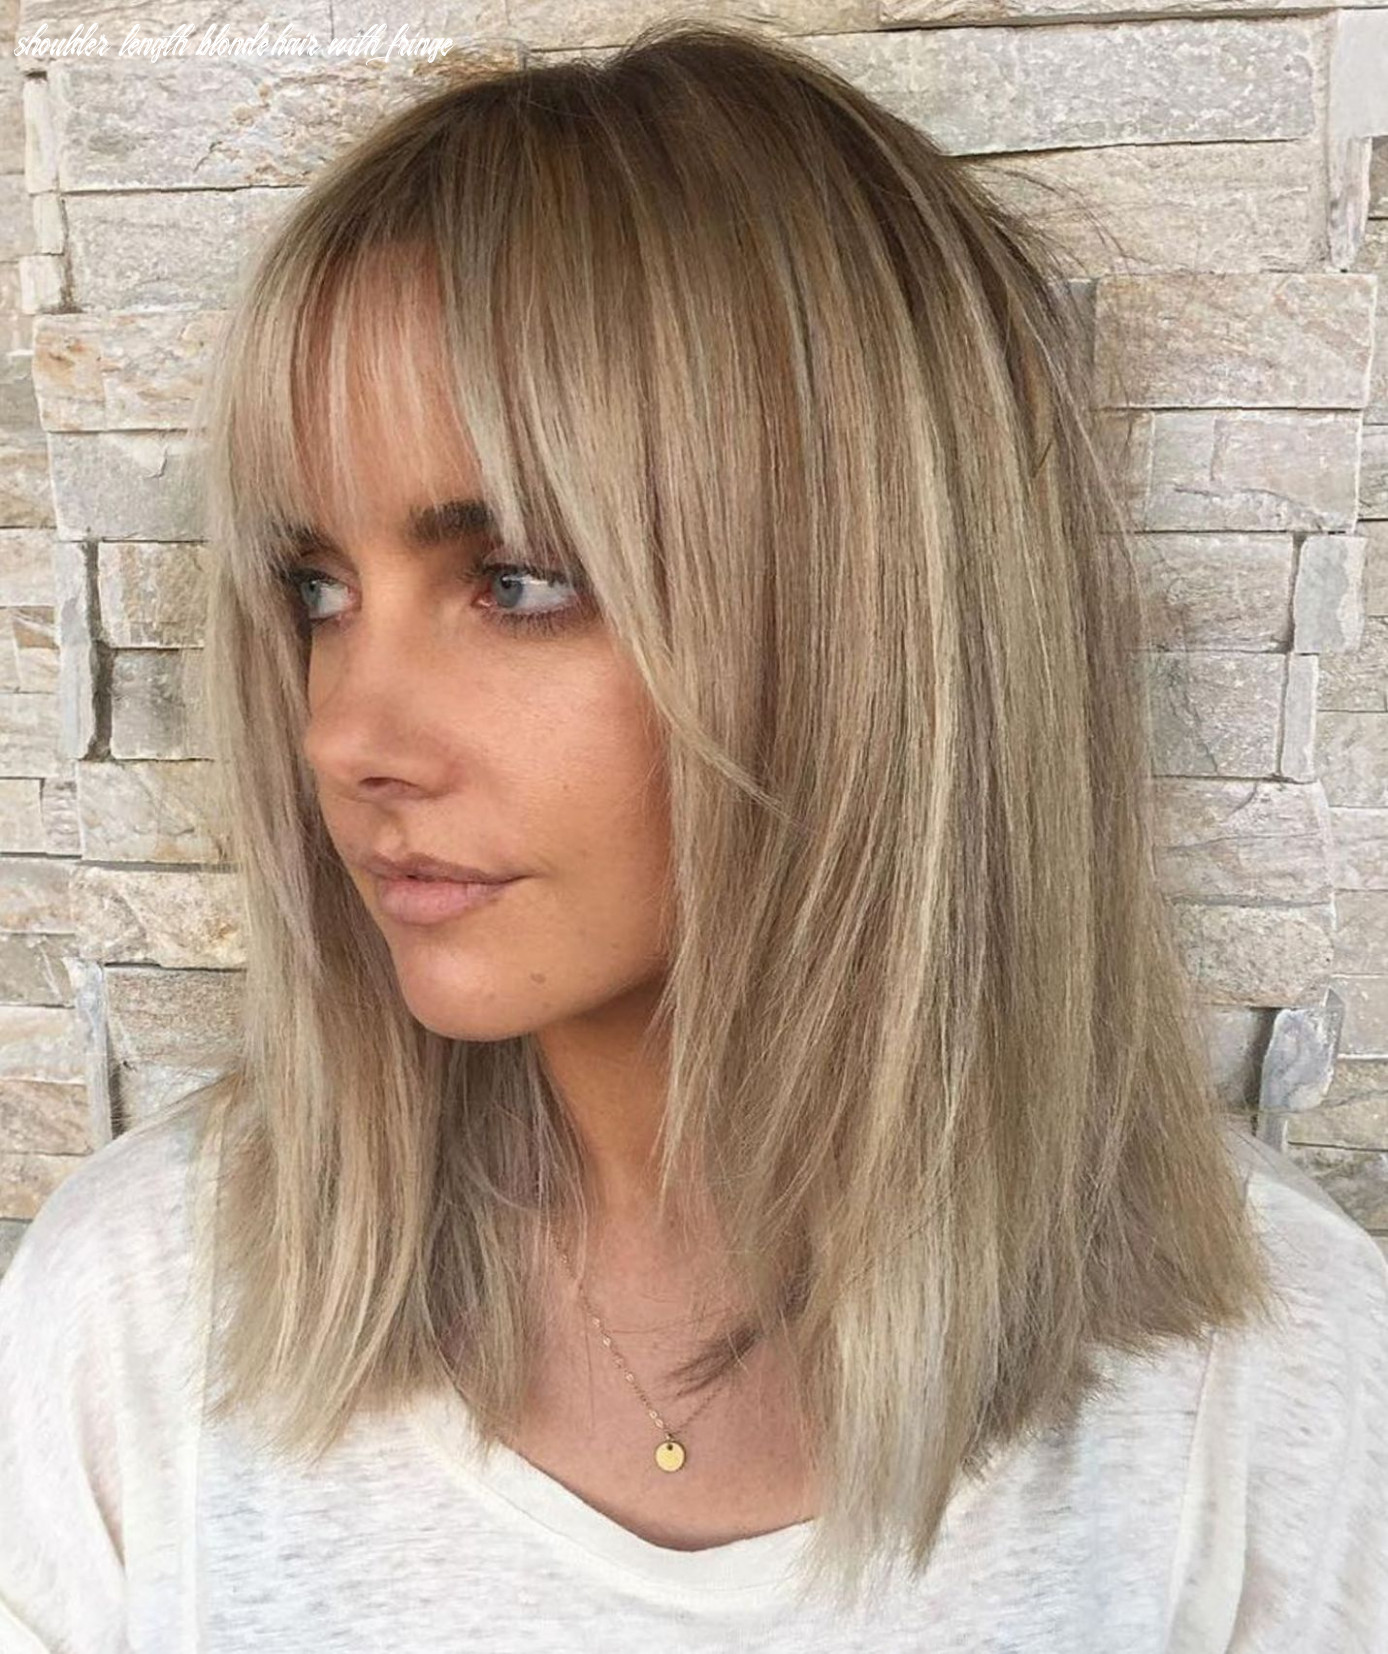 Pin on hair ideas shoulder length blonde hair with fringe